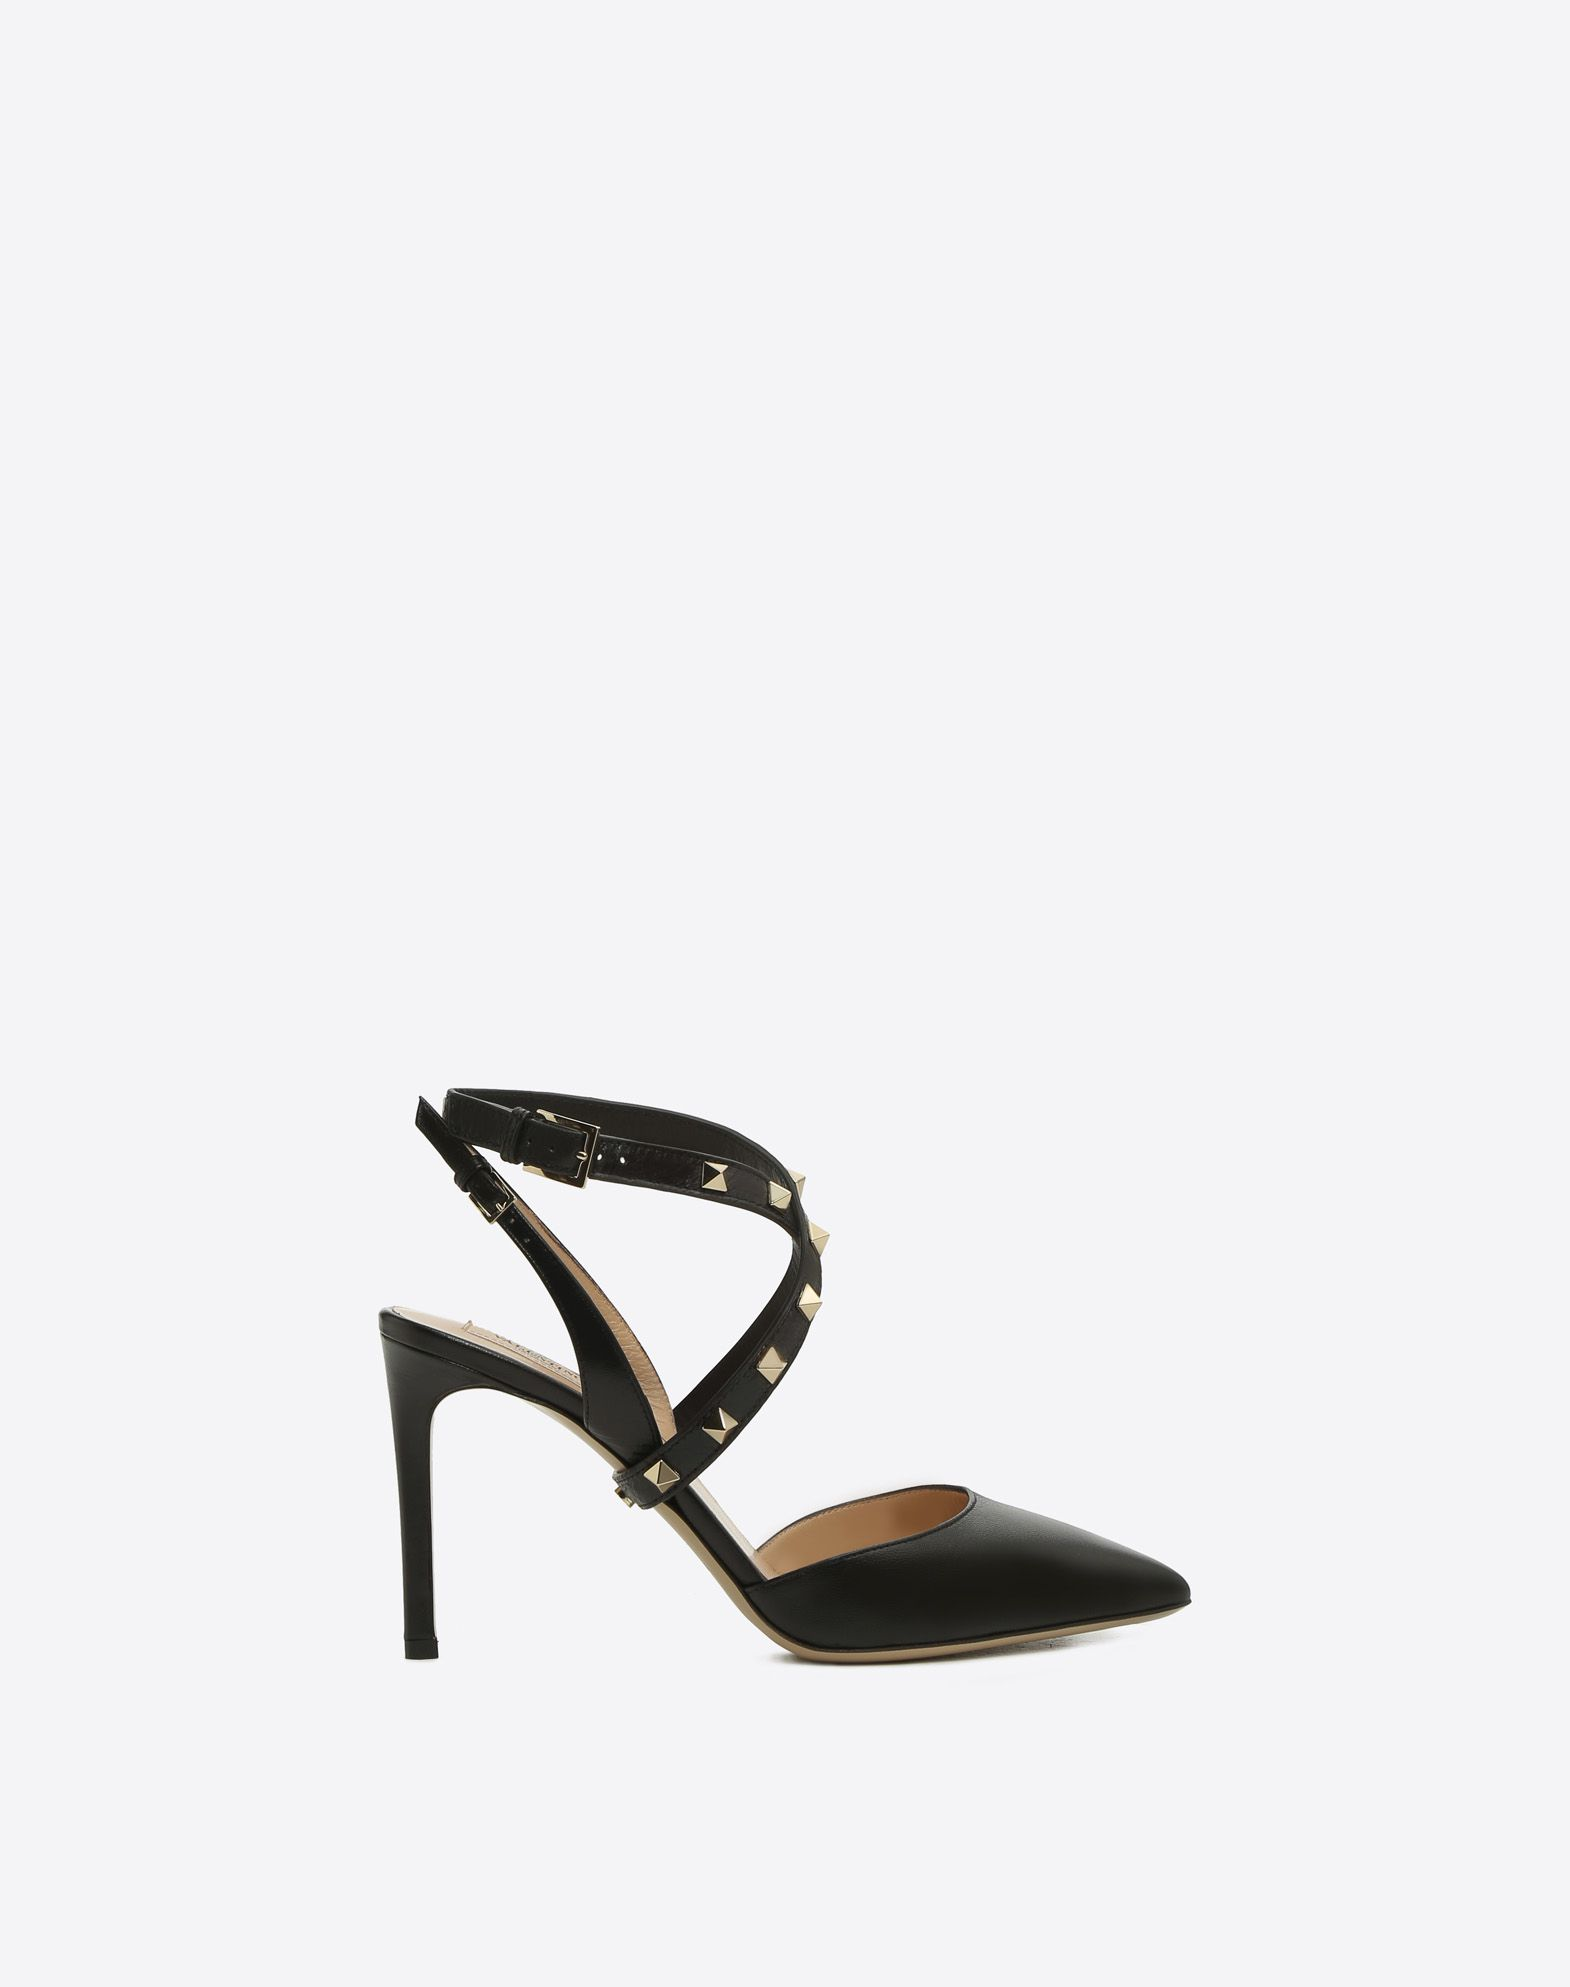 VALENTINO Solid color Stiletto heel Studs Buckling ankle strap closure  Narrow toeline Leather sole 45368098pq